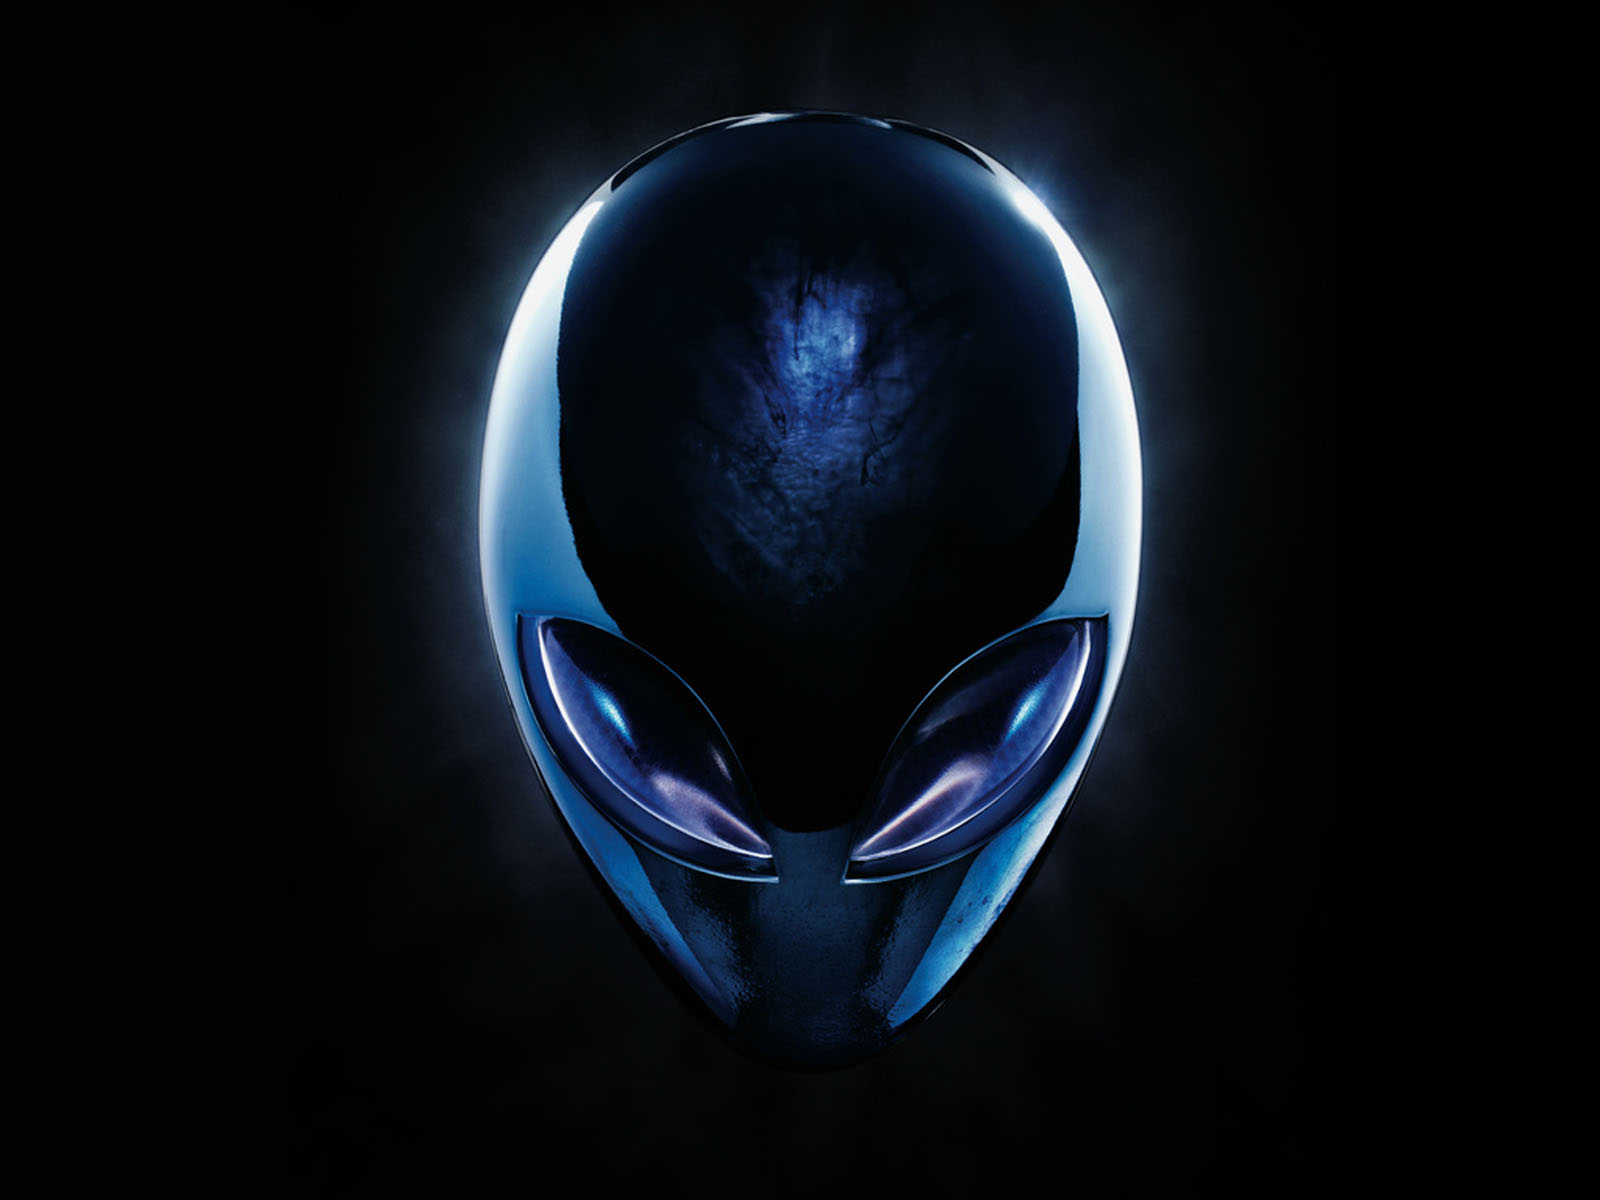 wallpaper Alien Eyes Wallpapers 1600x1200